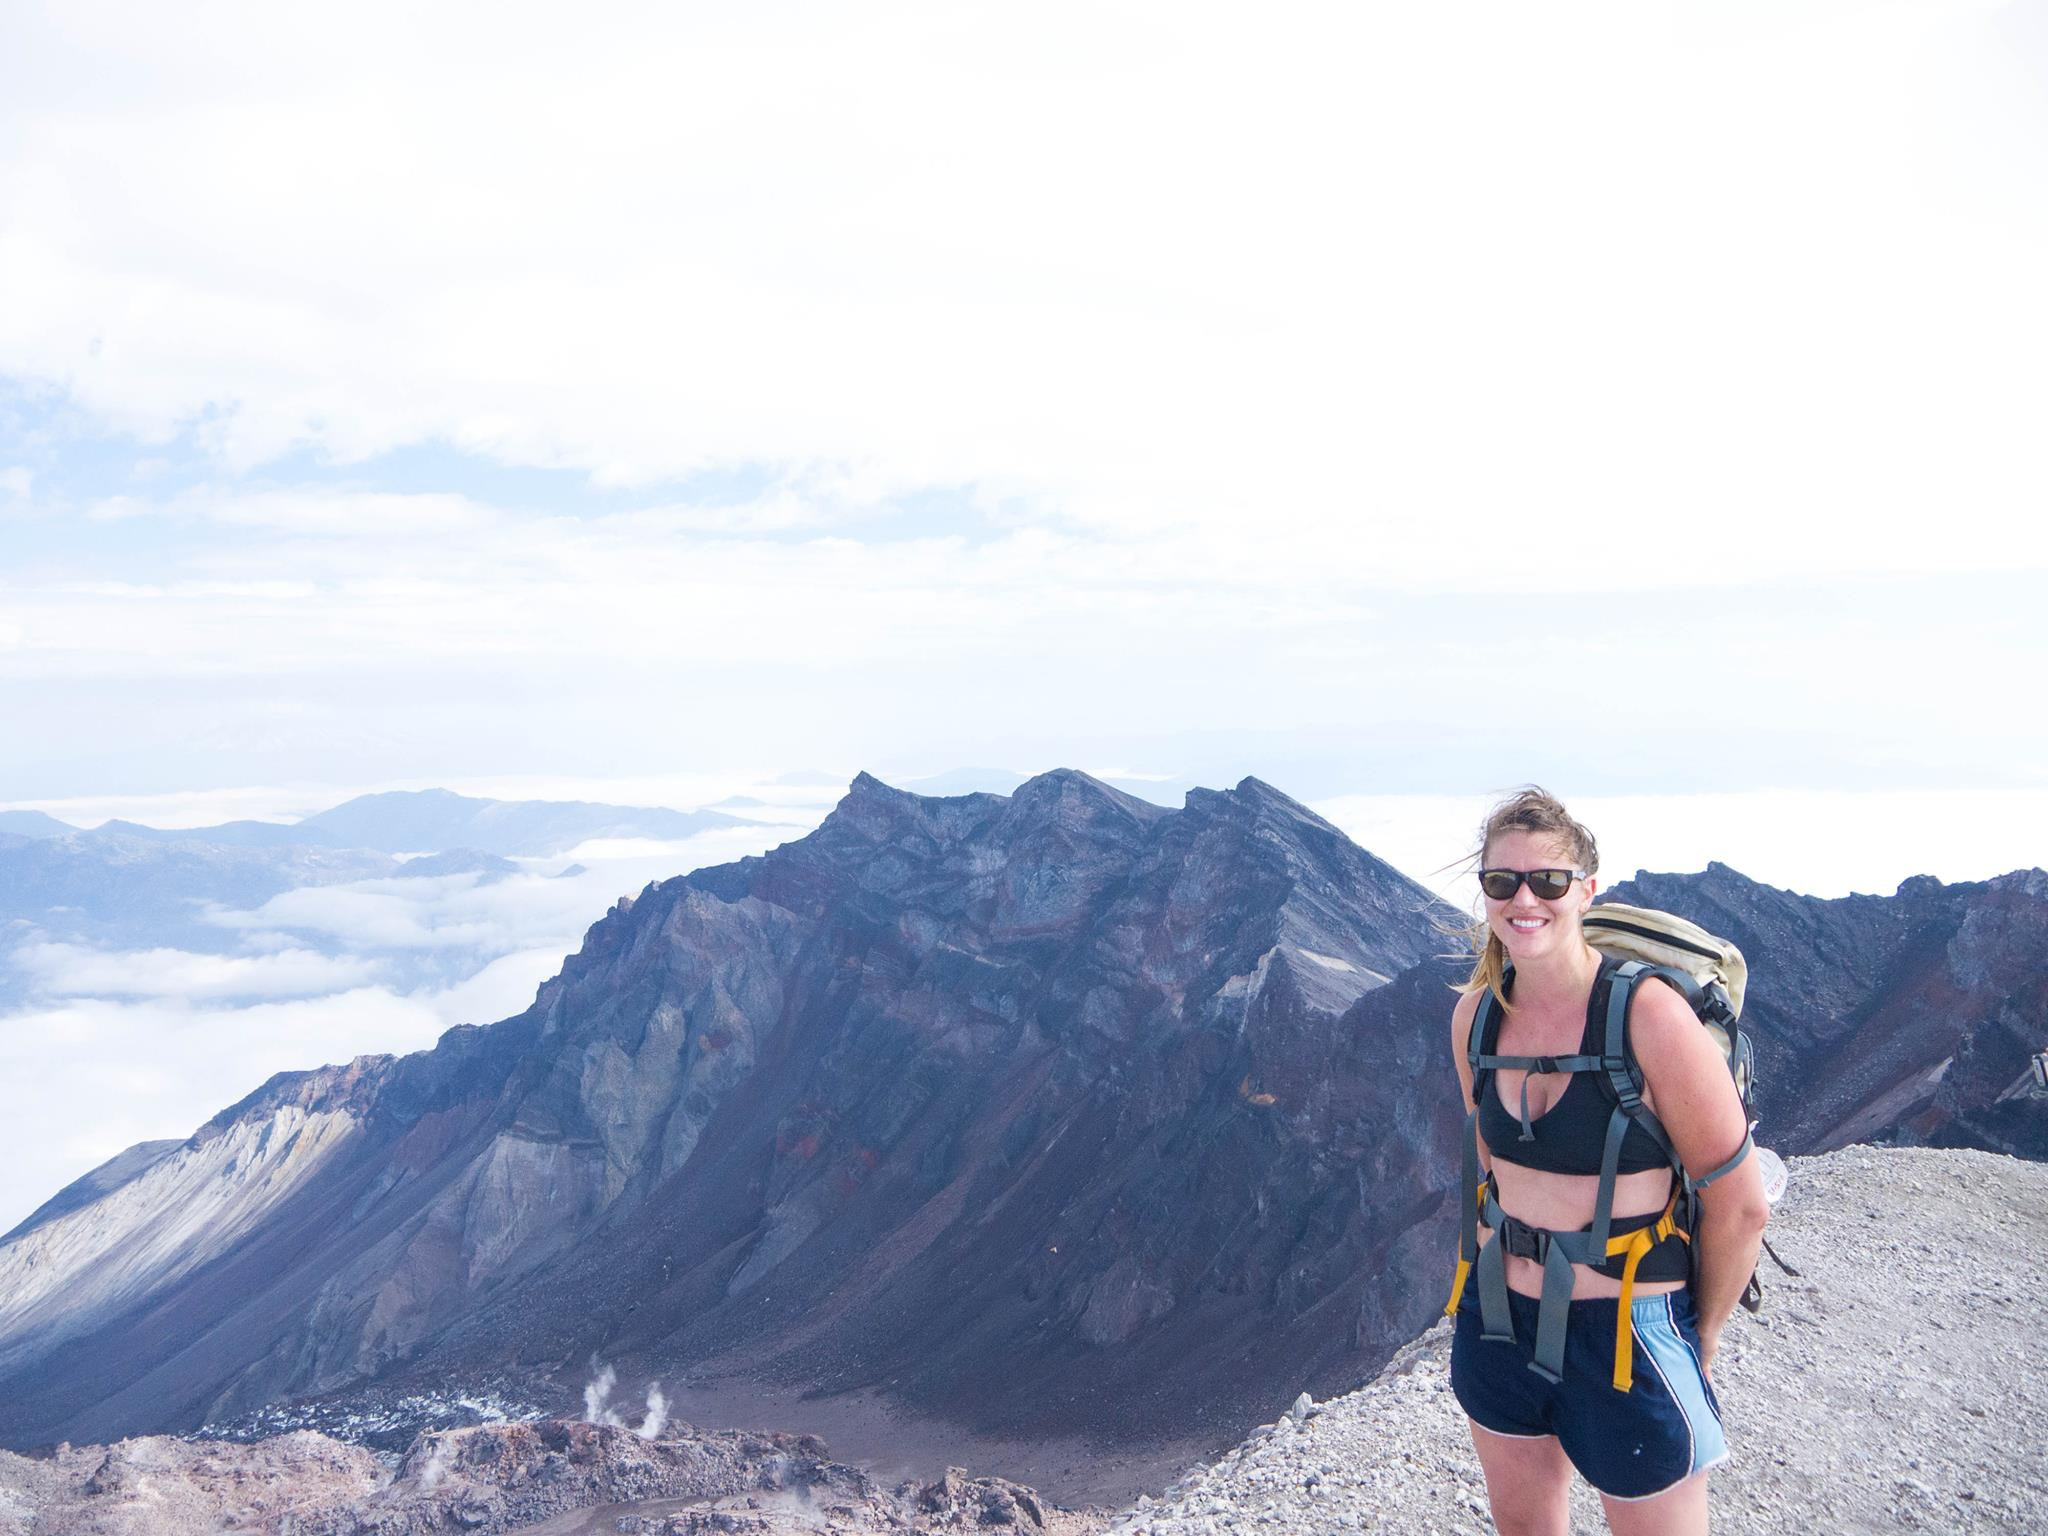 Yes, I am on the summit of this volcano in a sports bra and bare feet. No, I don't need any assistance but I will accept Nutella donations.  Photo:  Ryuhei Yokokawa